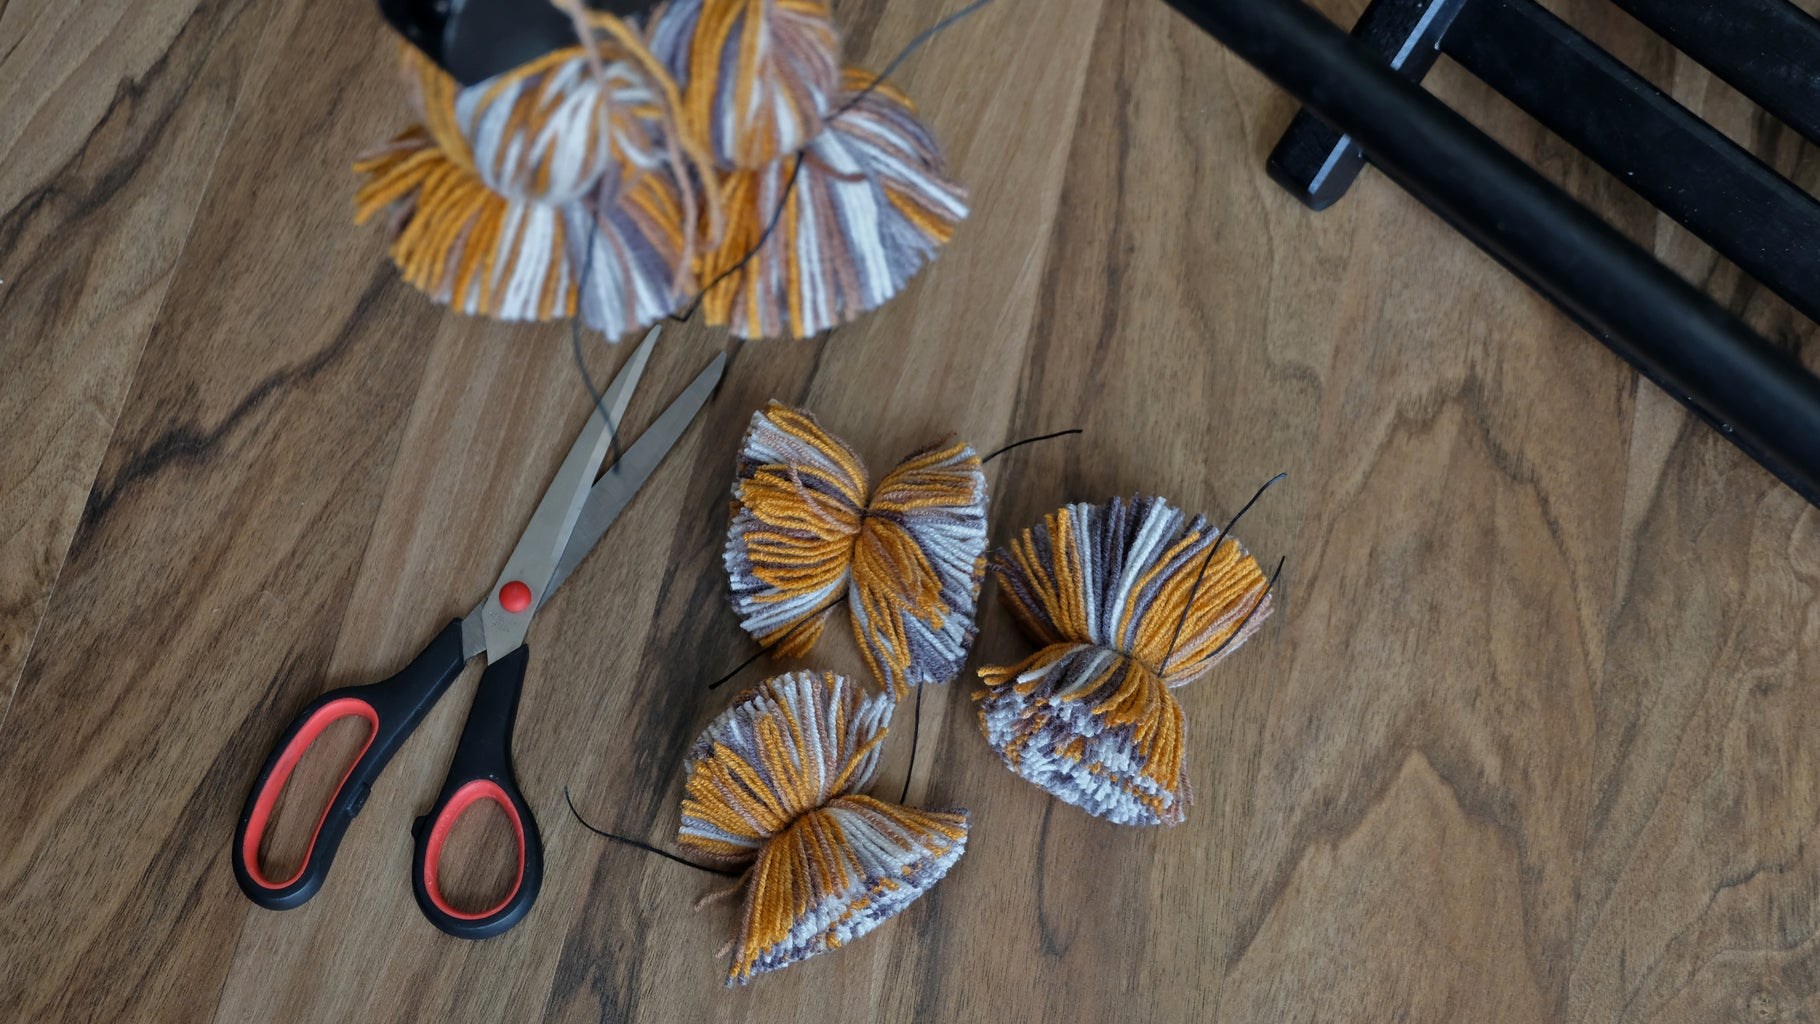 Making Pompoms. Cutting